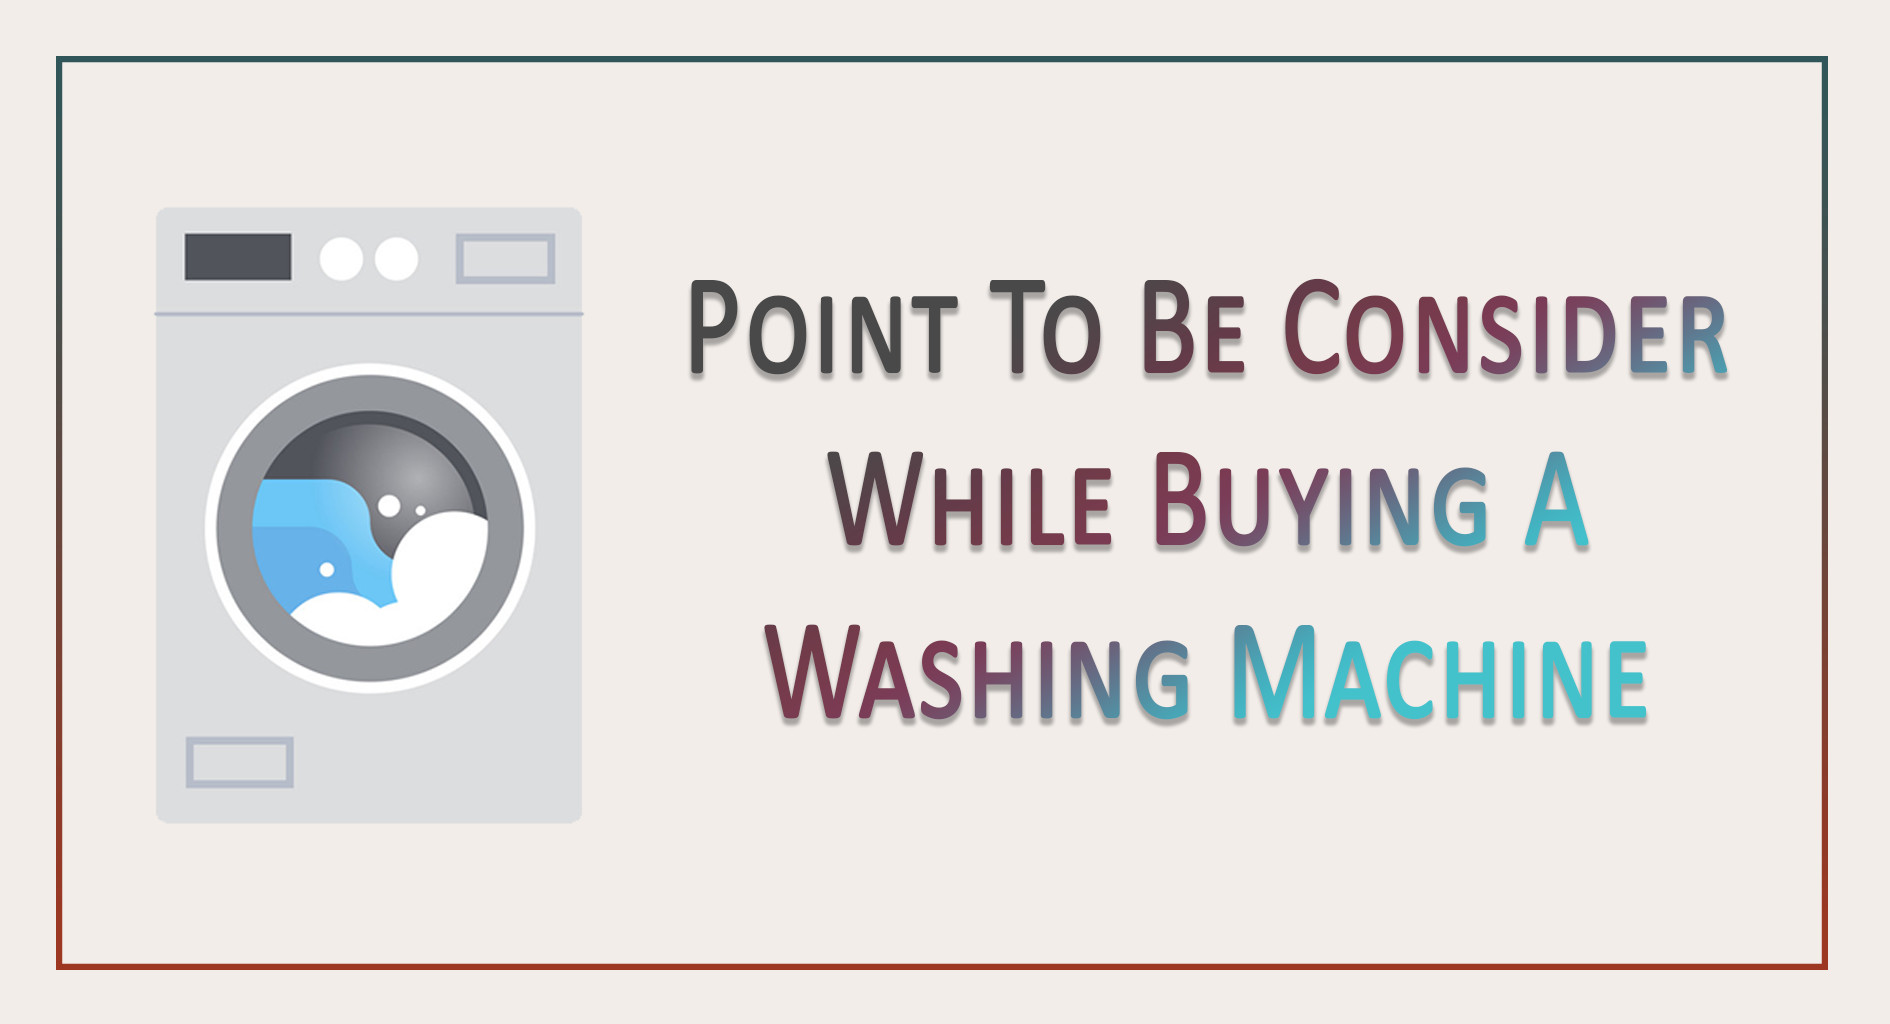 Point To Be Consider While Buying A Washing Machine